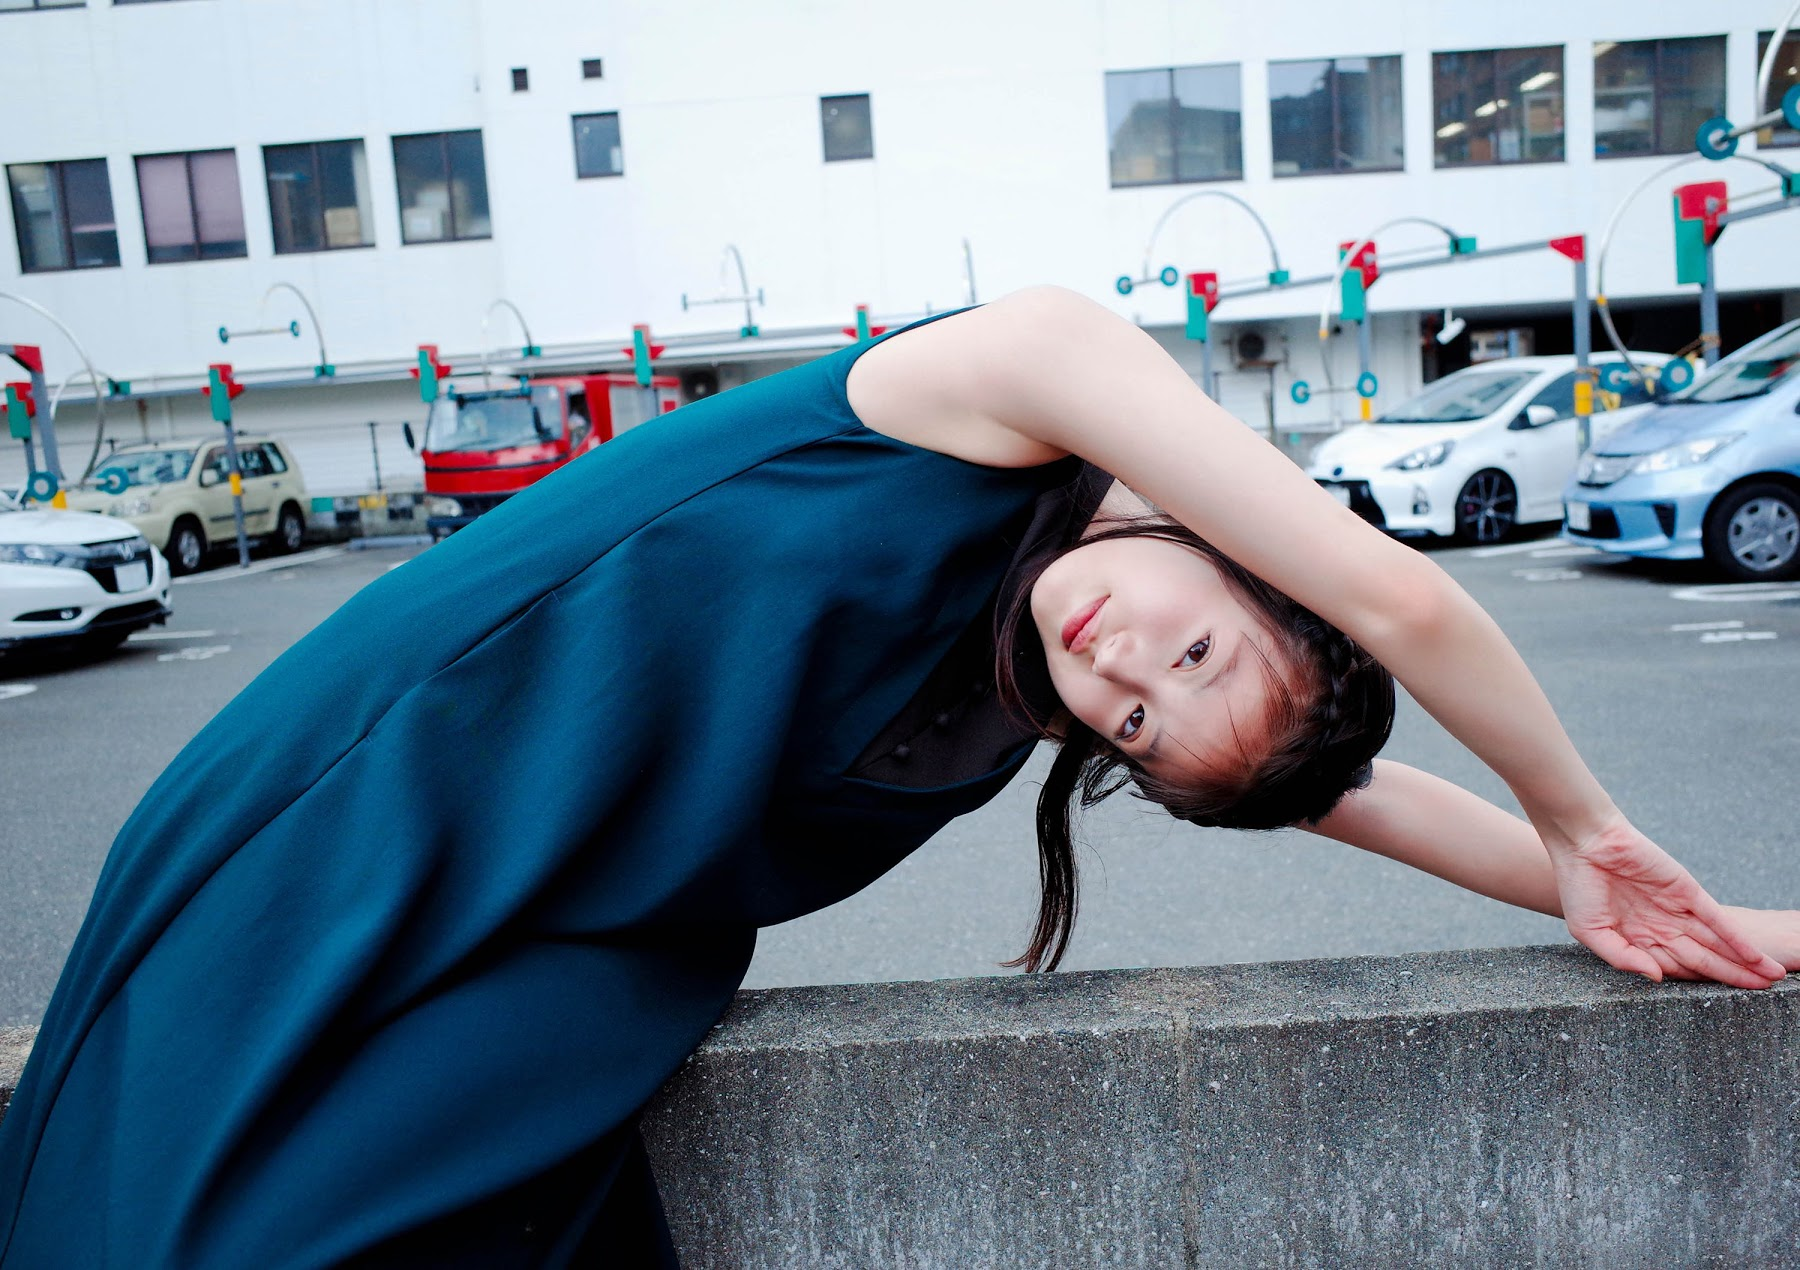 Without a doubt the youngest actress Mio Imada033